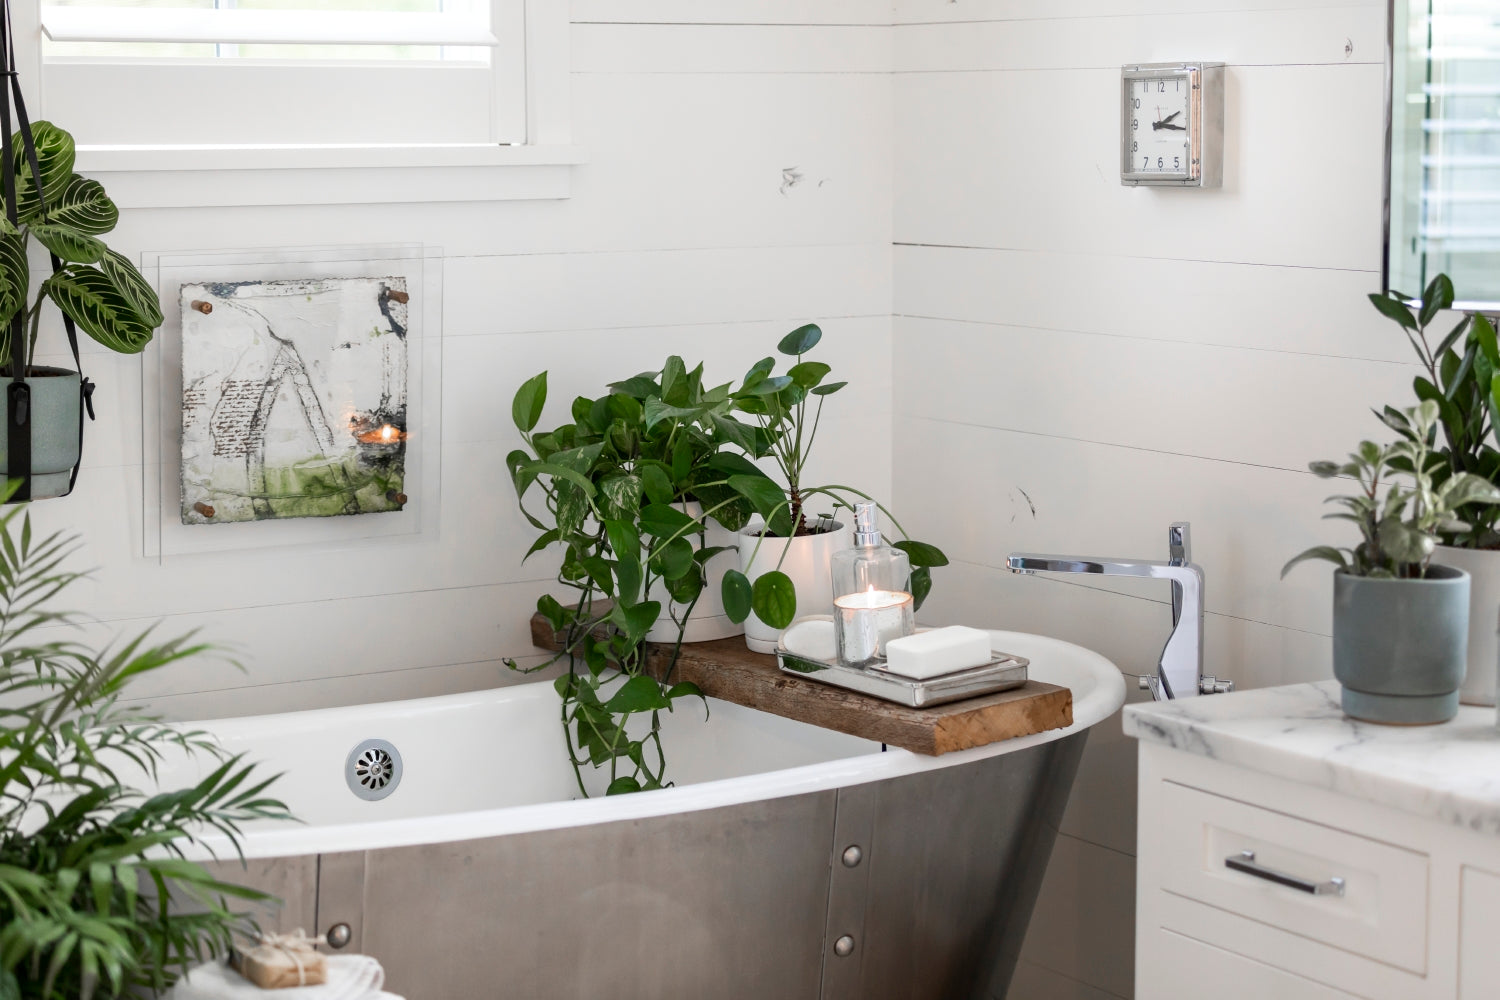 Best Plants for the Bathroom & Tips for Styling Them